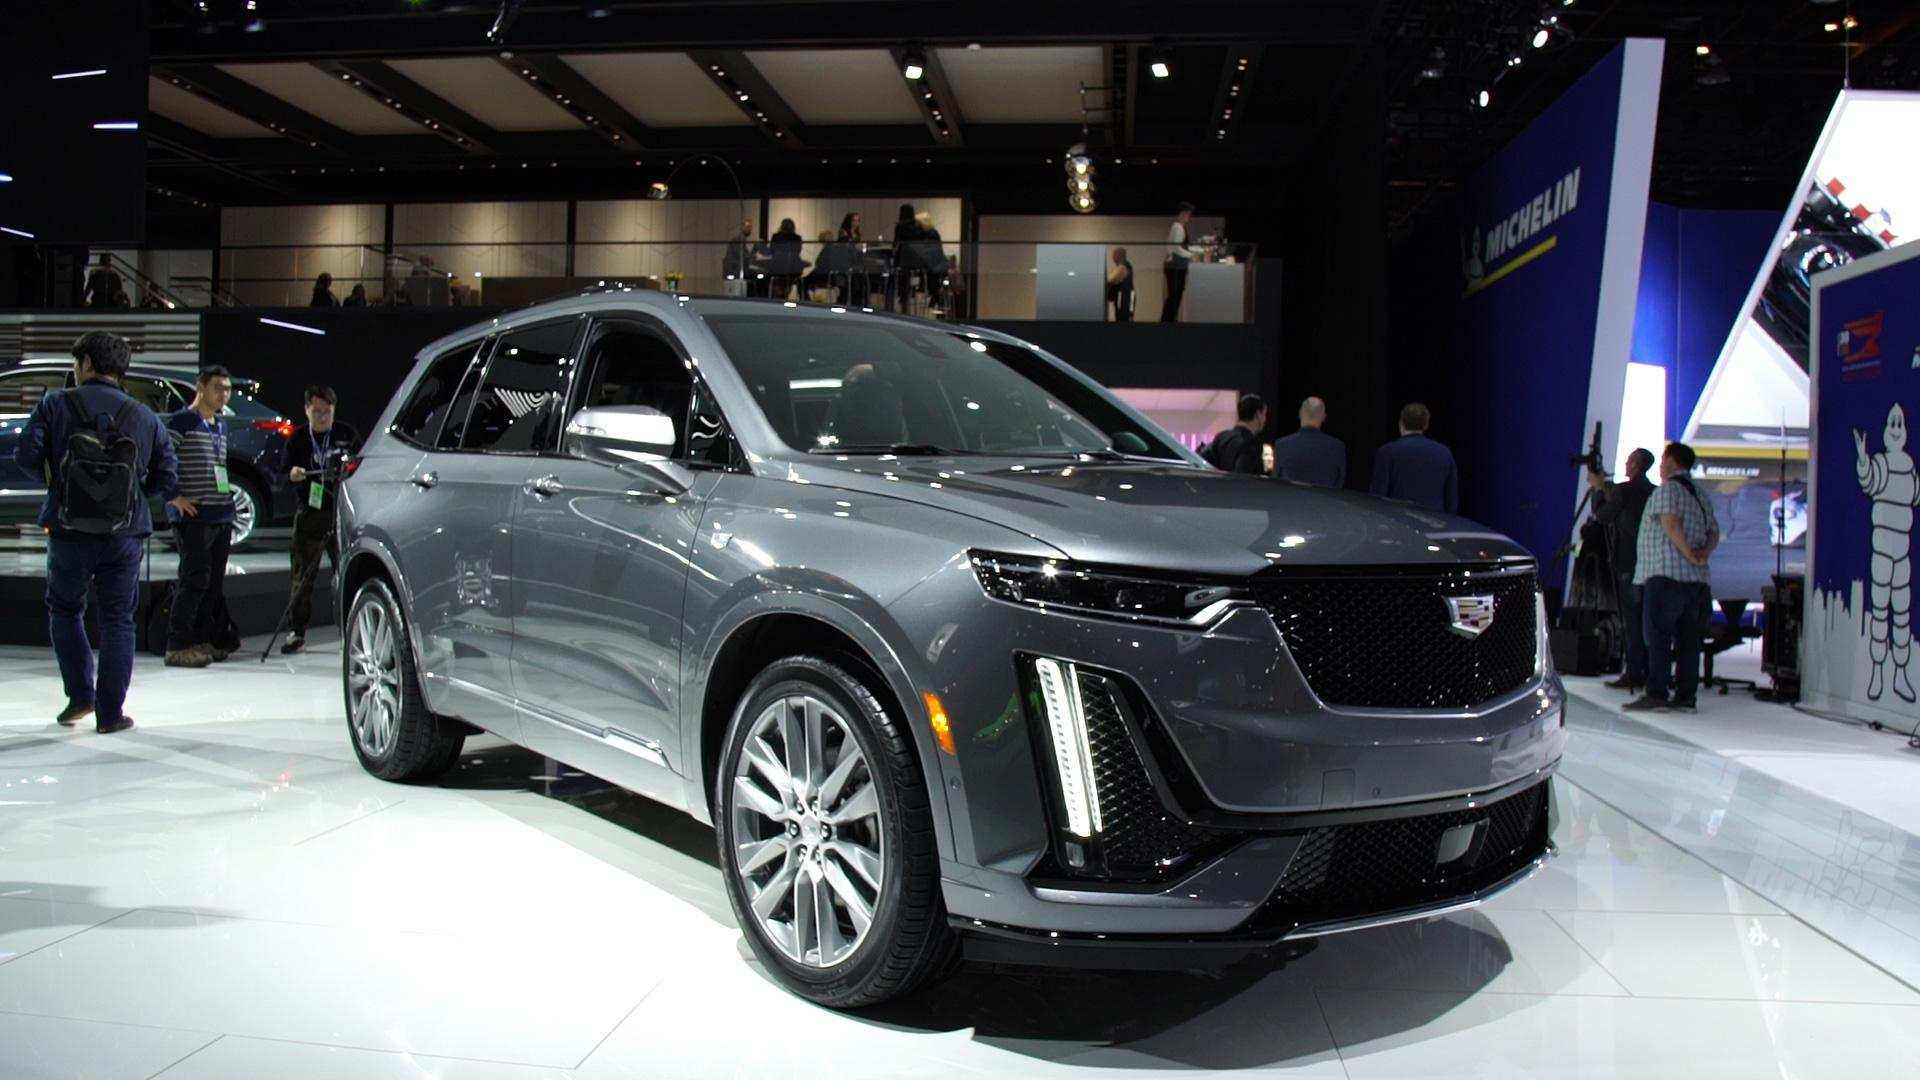 92 The Best 2020 Cadillac Xt6 Interior Exterior